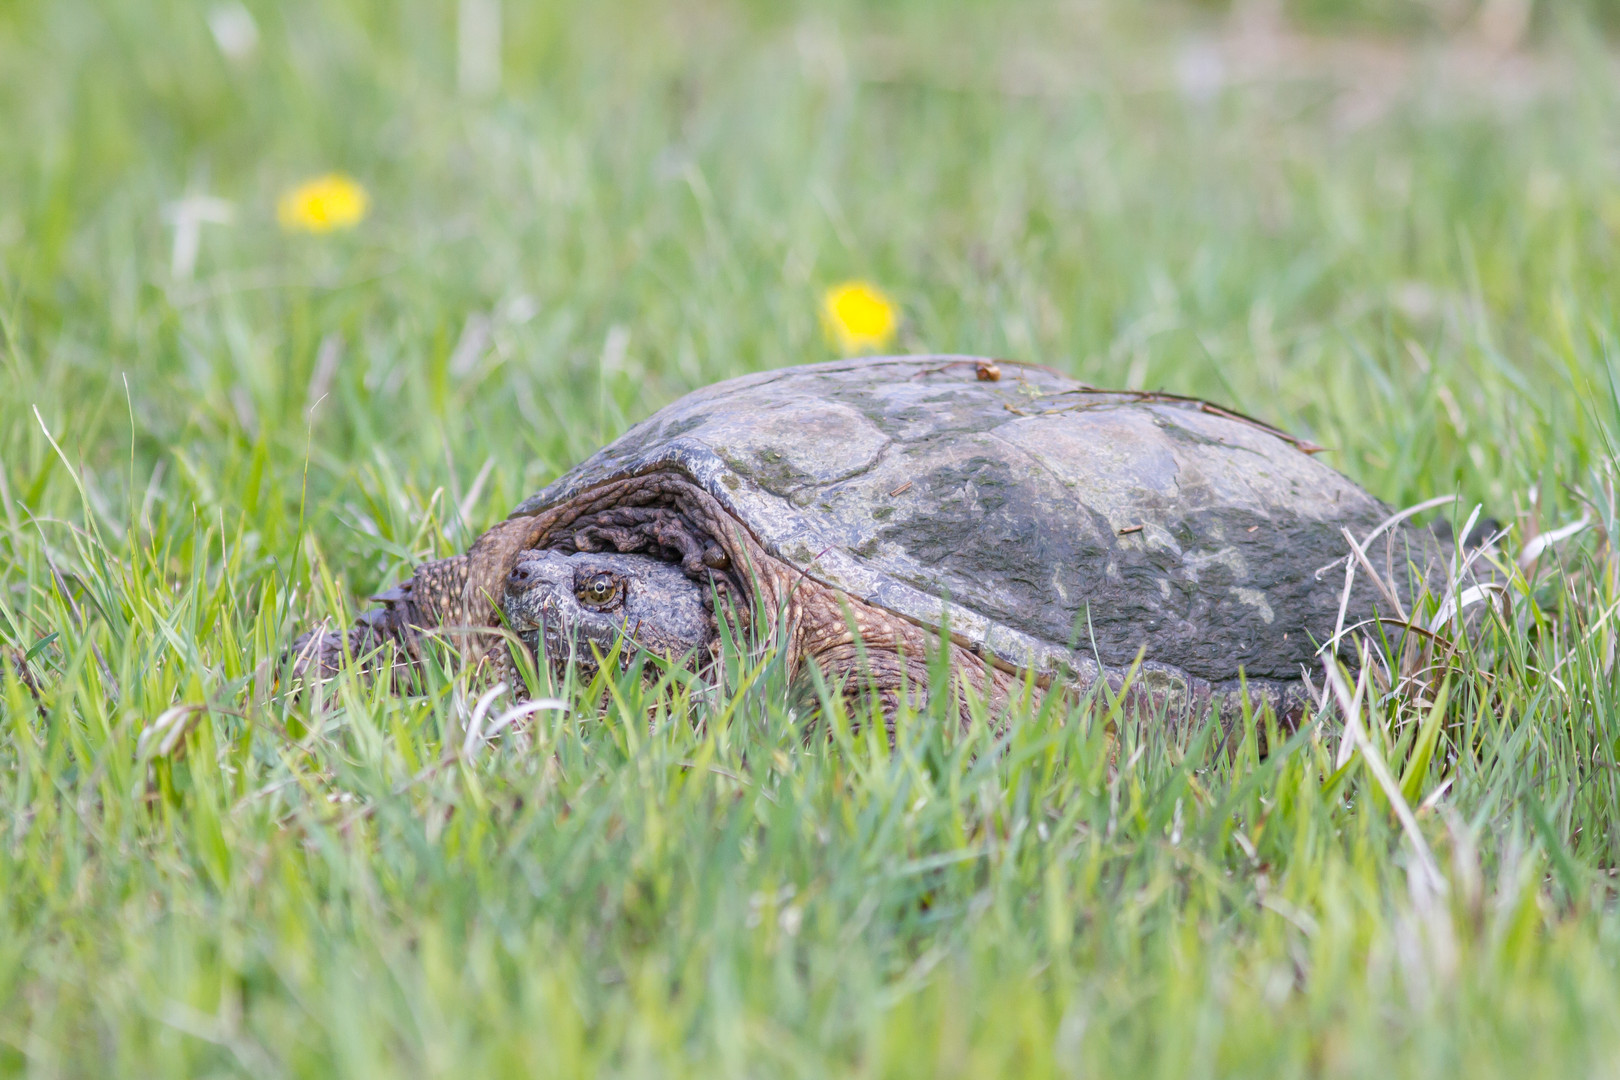 Tortue serpentine / Snapping turtle